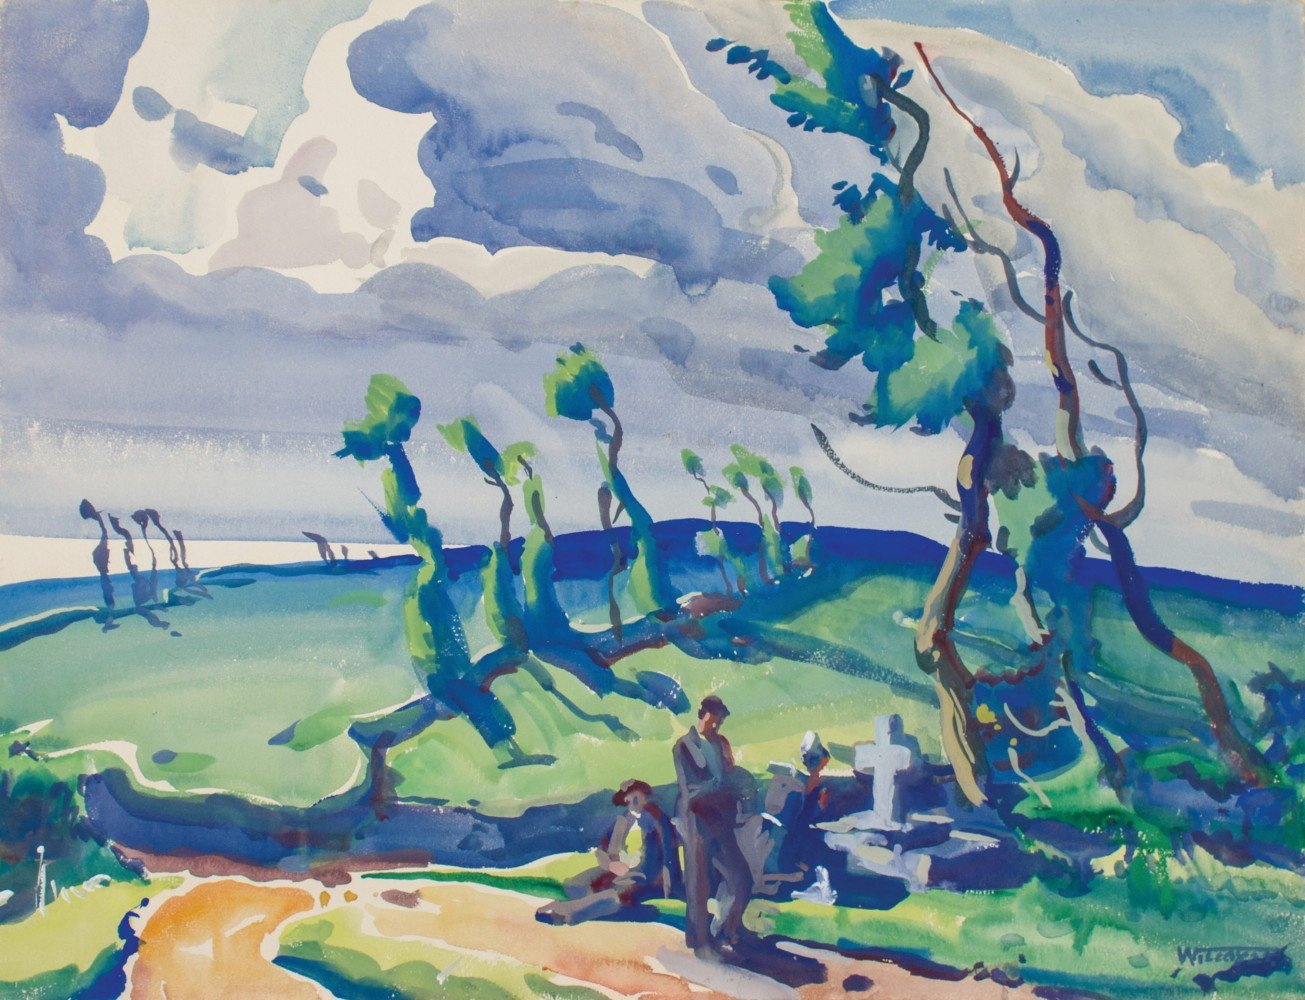 Figurative Landscape Watercolor and Gouache on Board Painting: